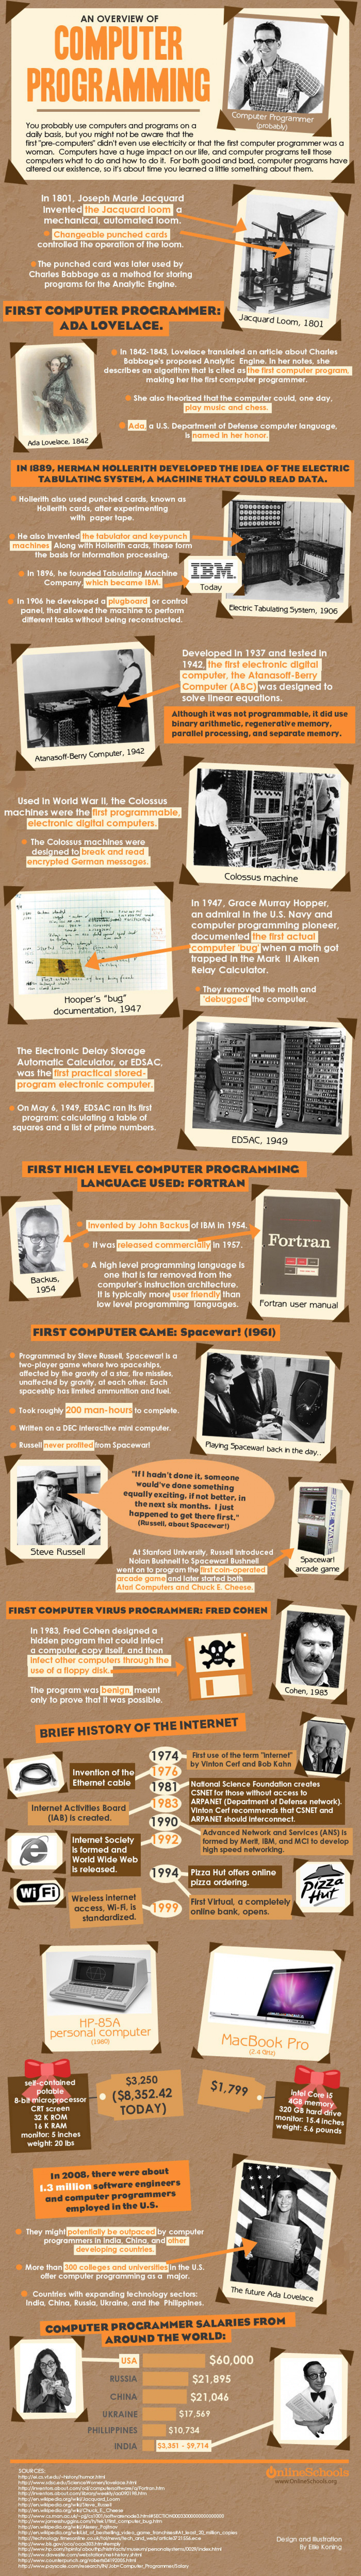 the history of computer programming ly the history of computer programming infographic